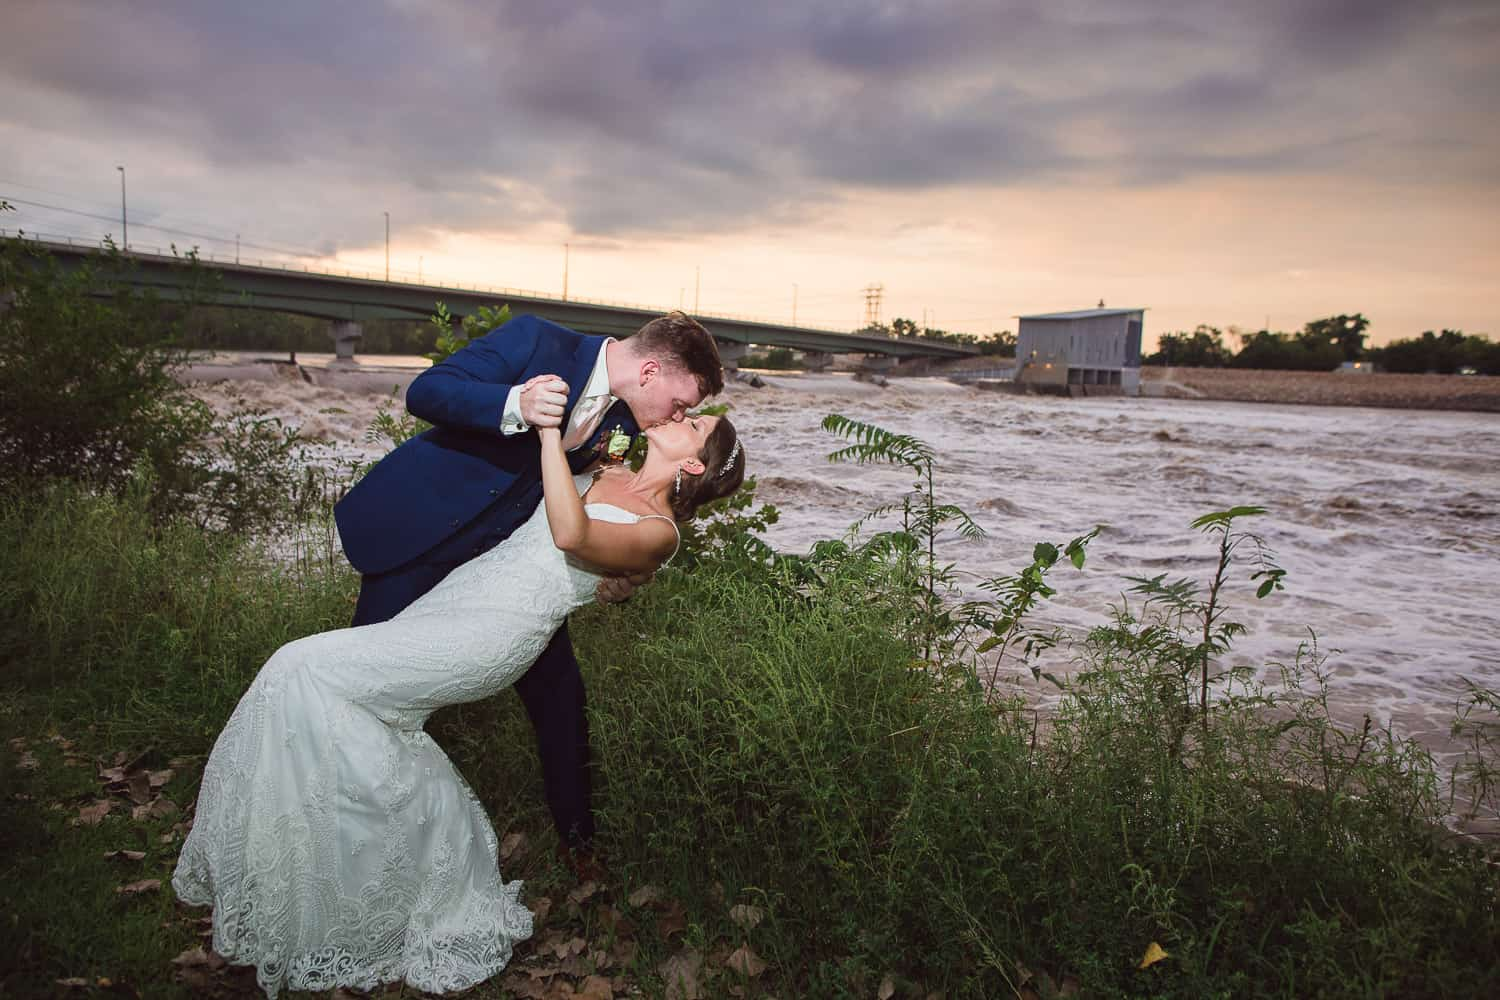 Sunset wedding pictures in Lawrence Kansas